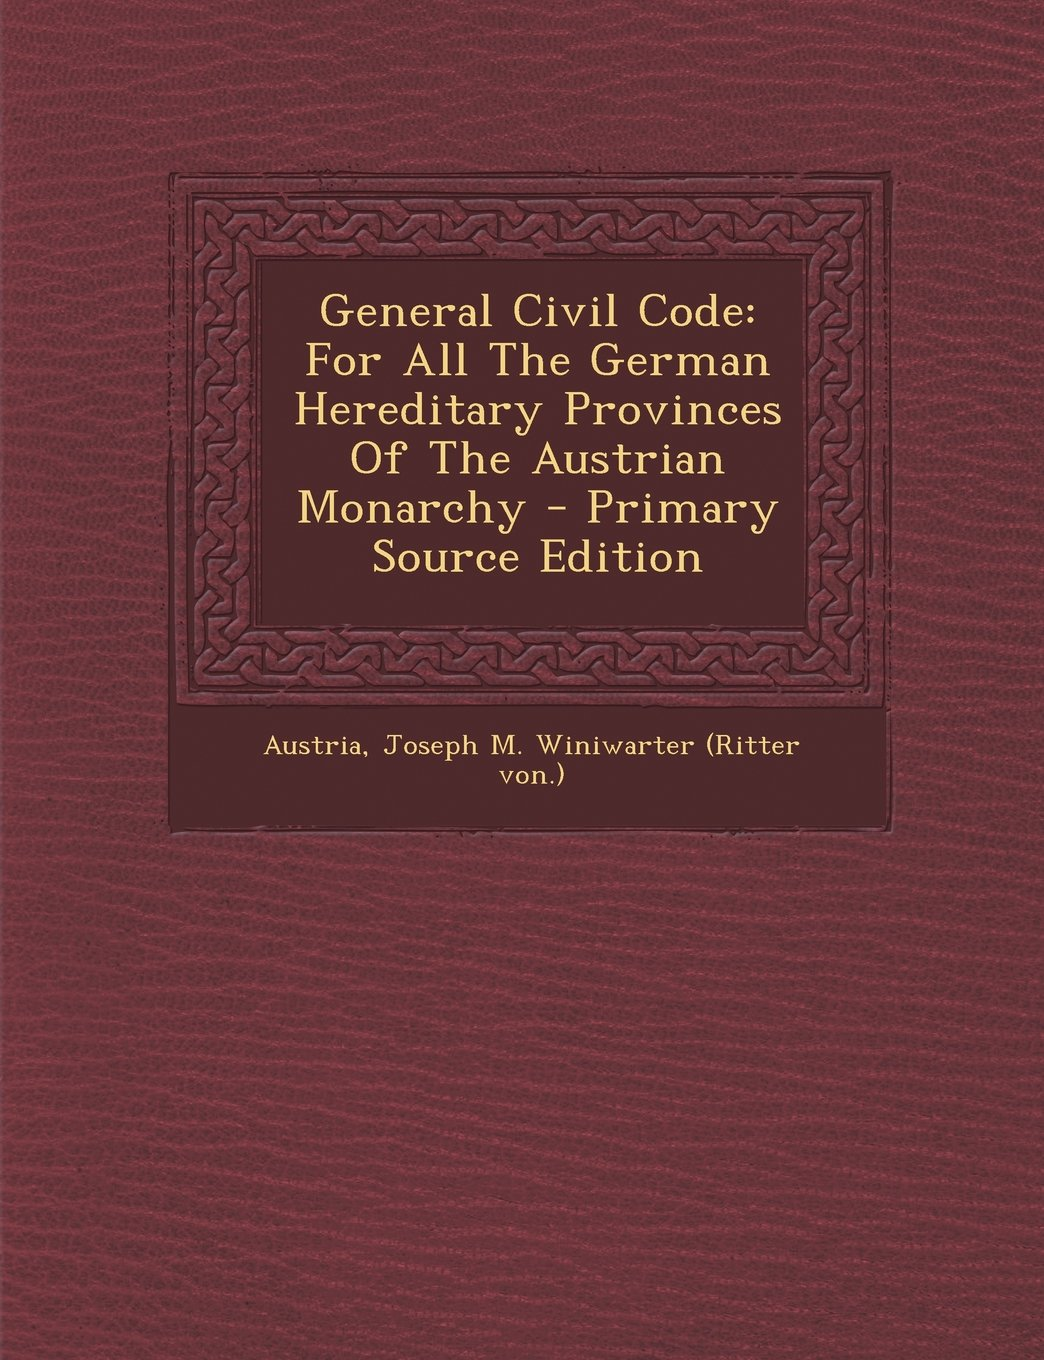 Read Online General Civil Code: For All The German Hereditary Provinces Of The Austrian Monarchy pdf